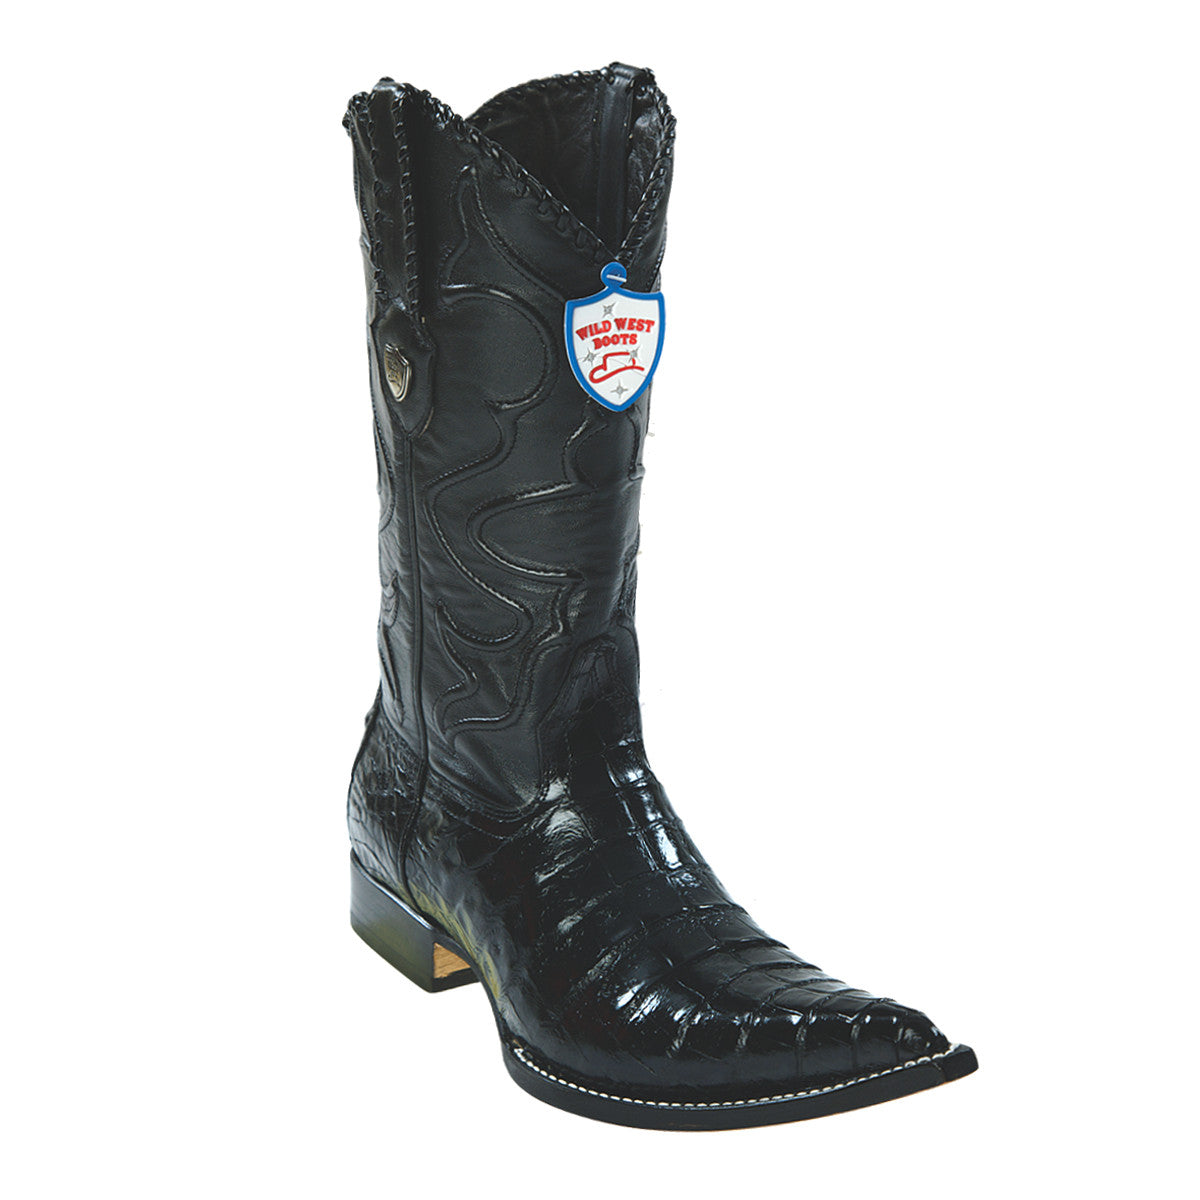 Wild West Boots H95 3x Toe Caiman Belly - Black